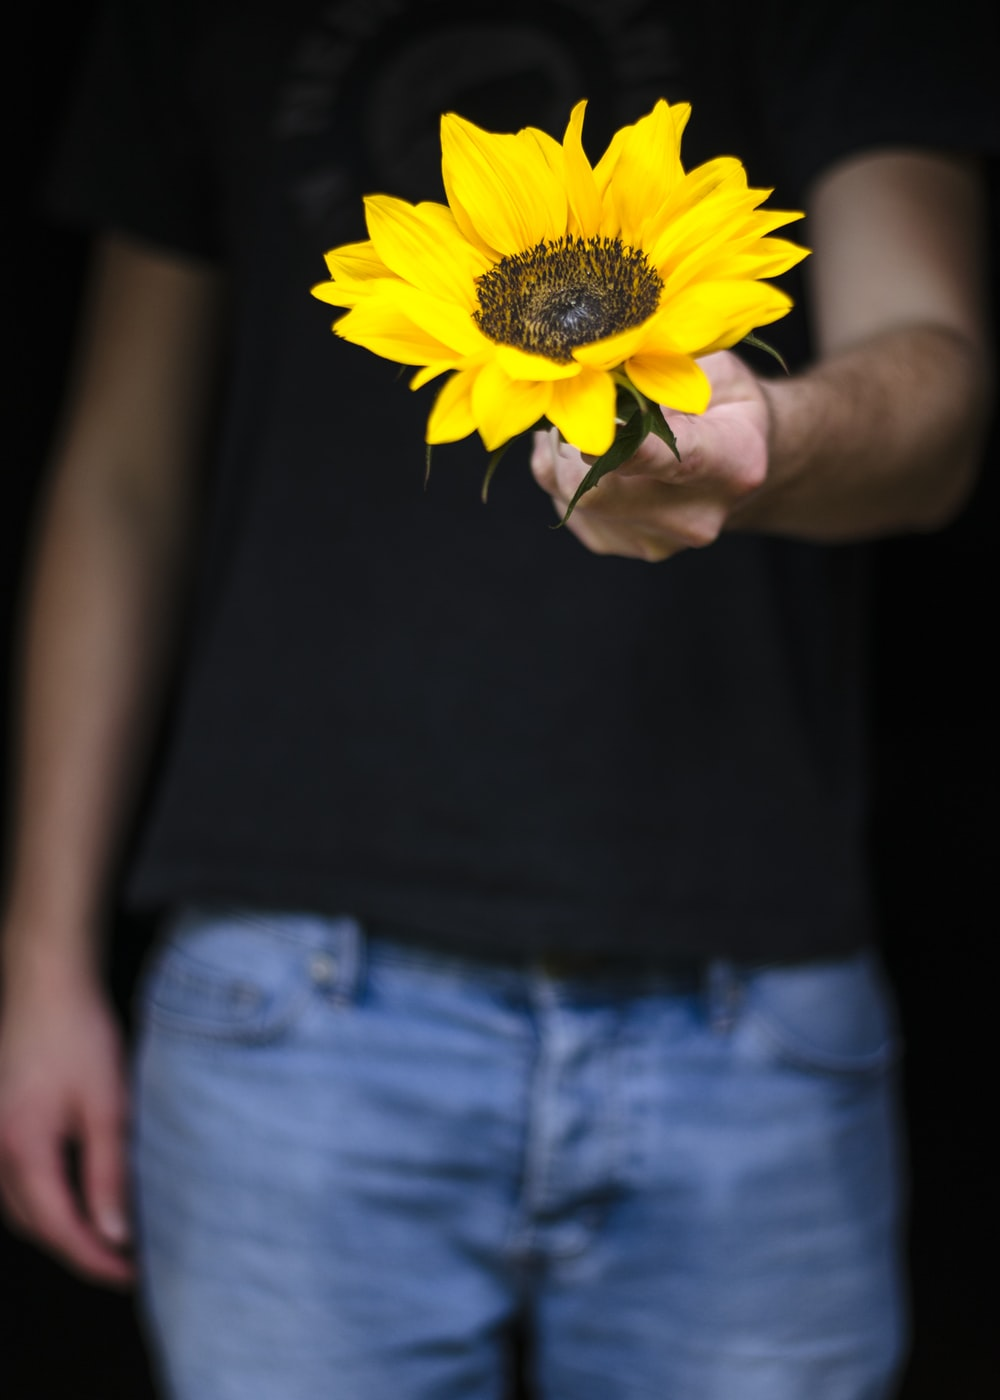 person holding yellow sunflower